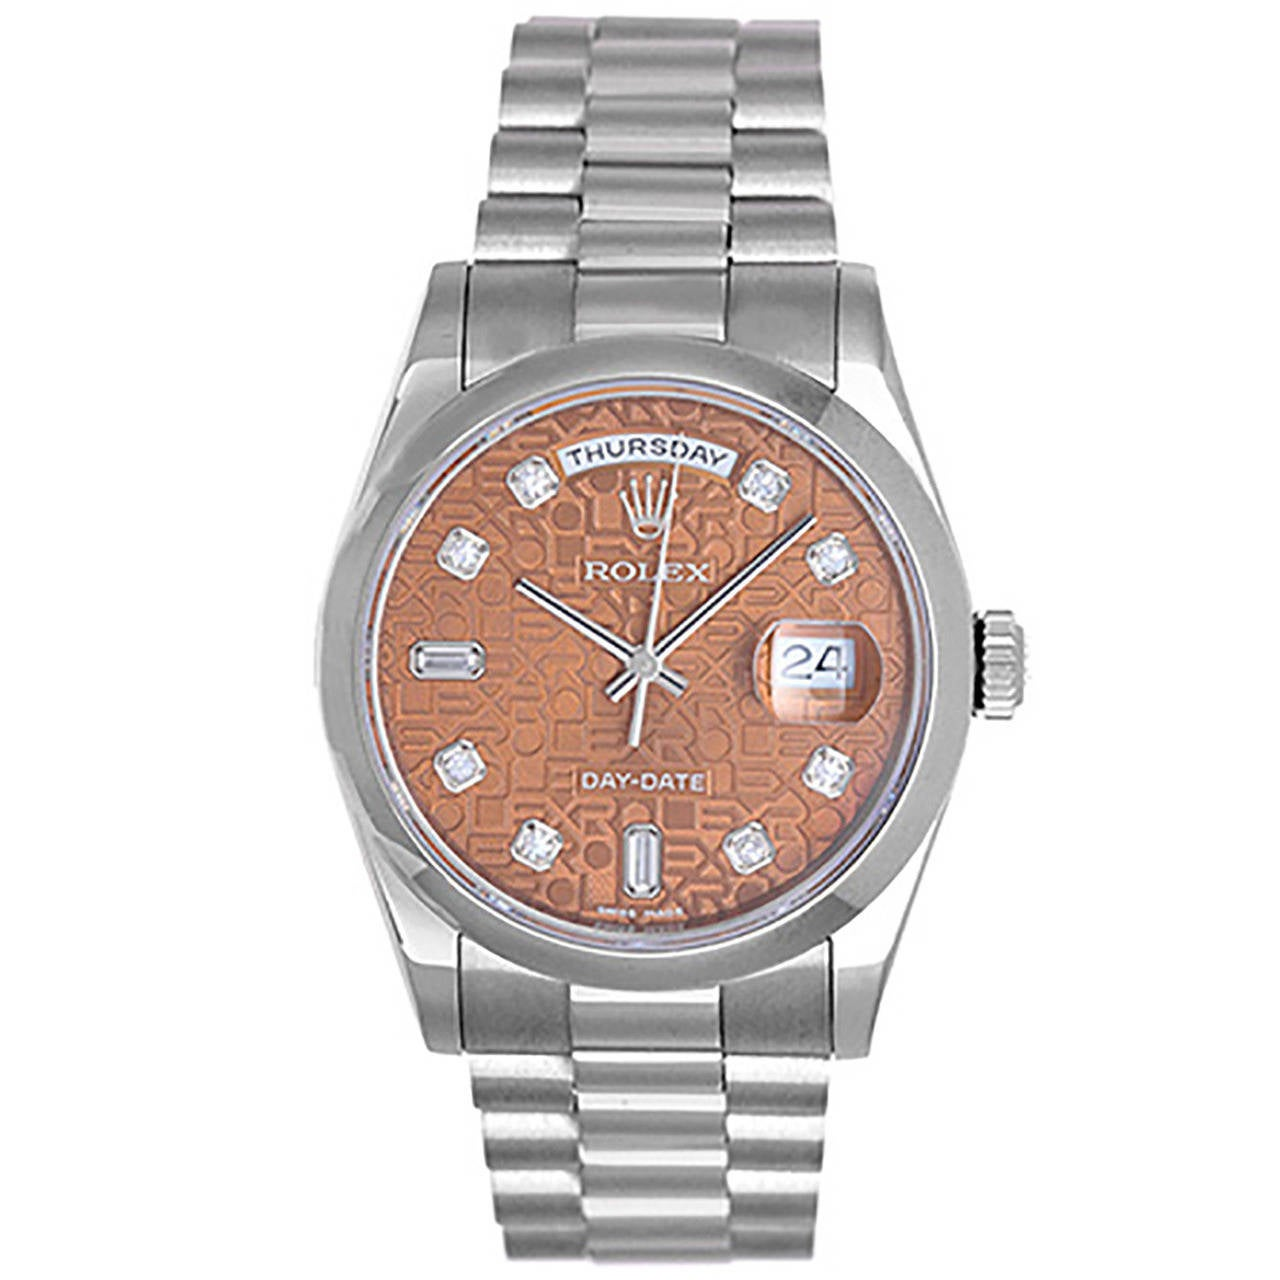 6a0d6a6c6c8 Rolex White Gold President Day-Date Havana Dial Automatic Wristwatch Ref  118209 For Sale